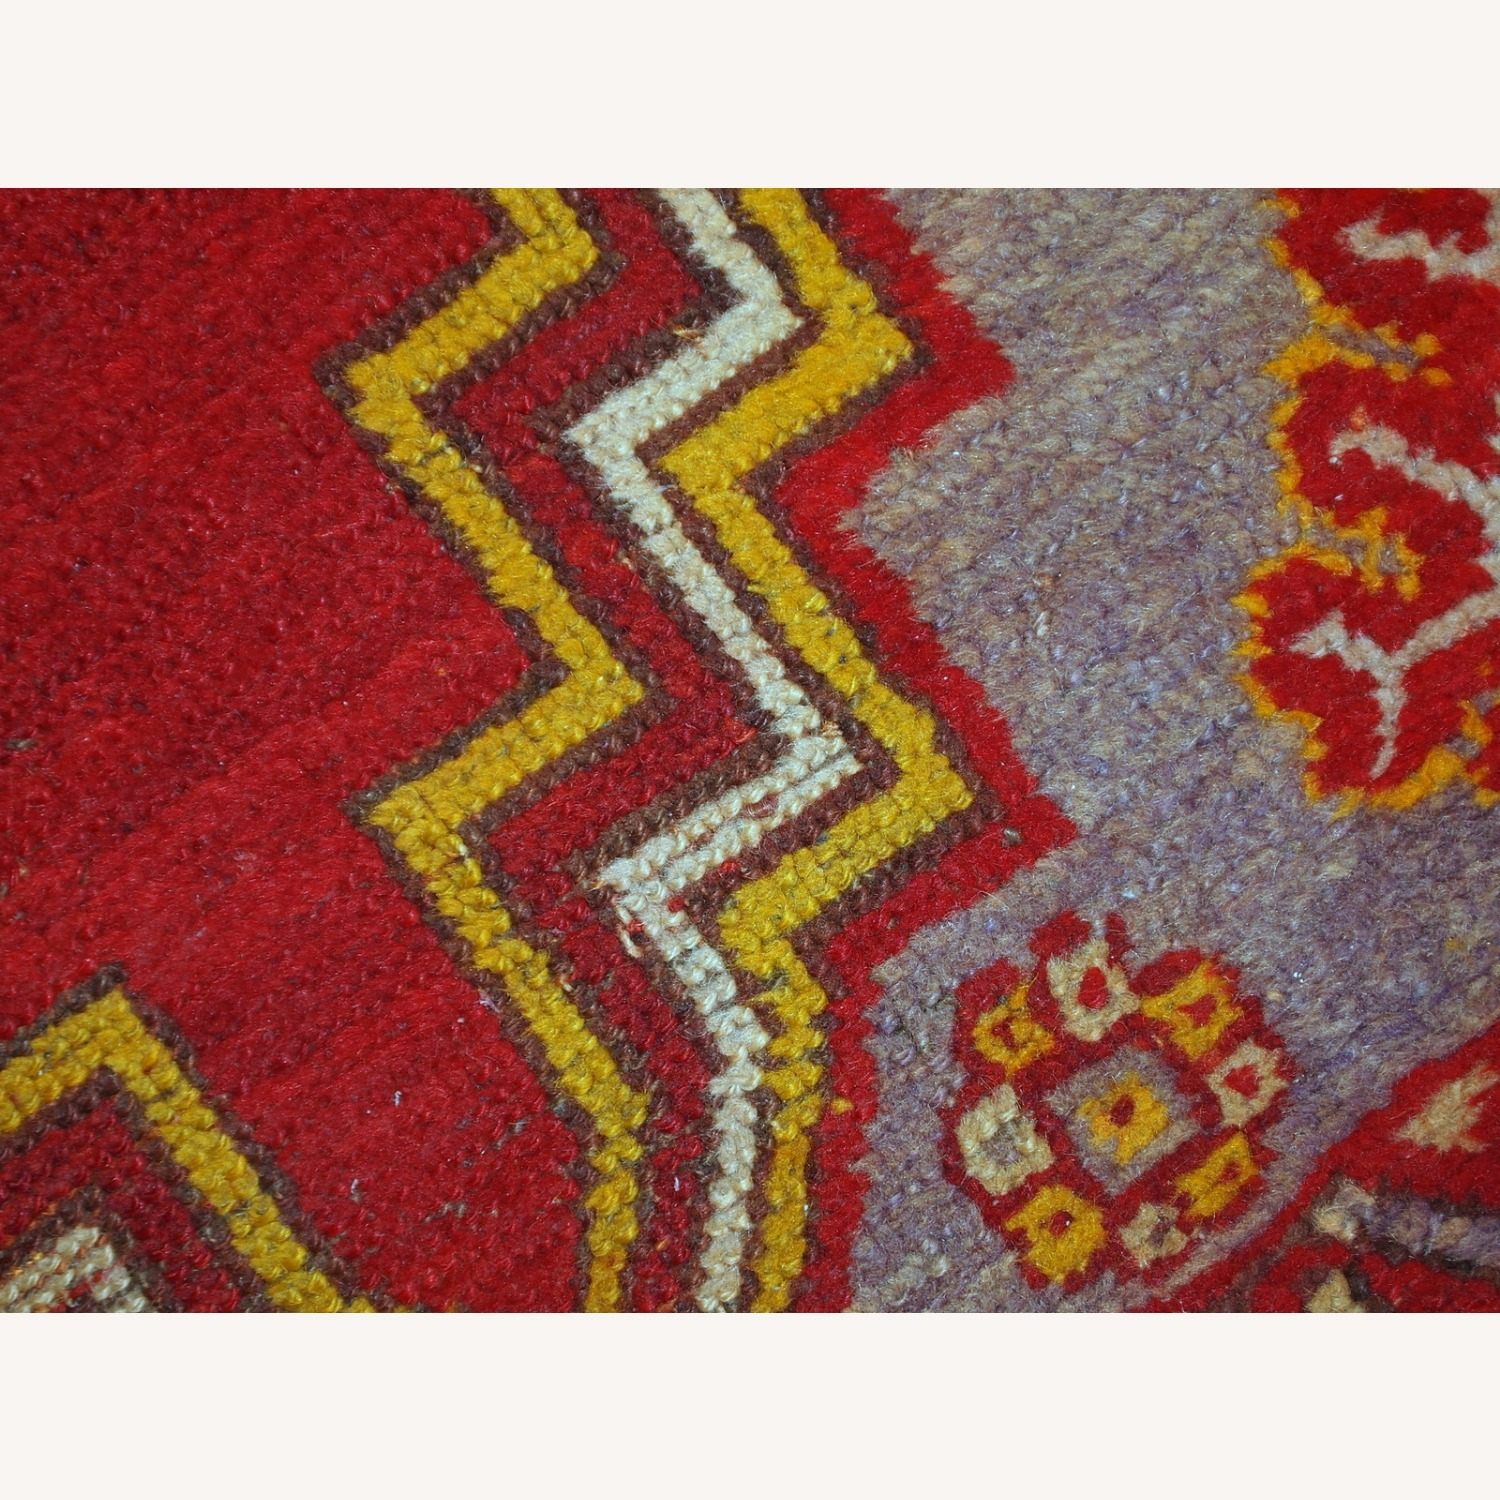 Handmade Antique Turkish Anatolian Rug - image-6